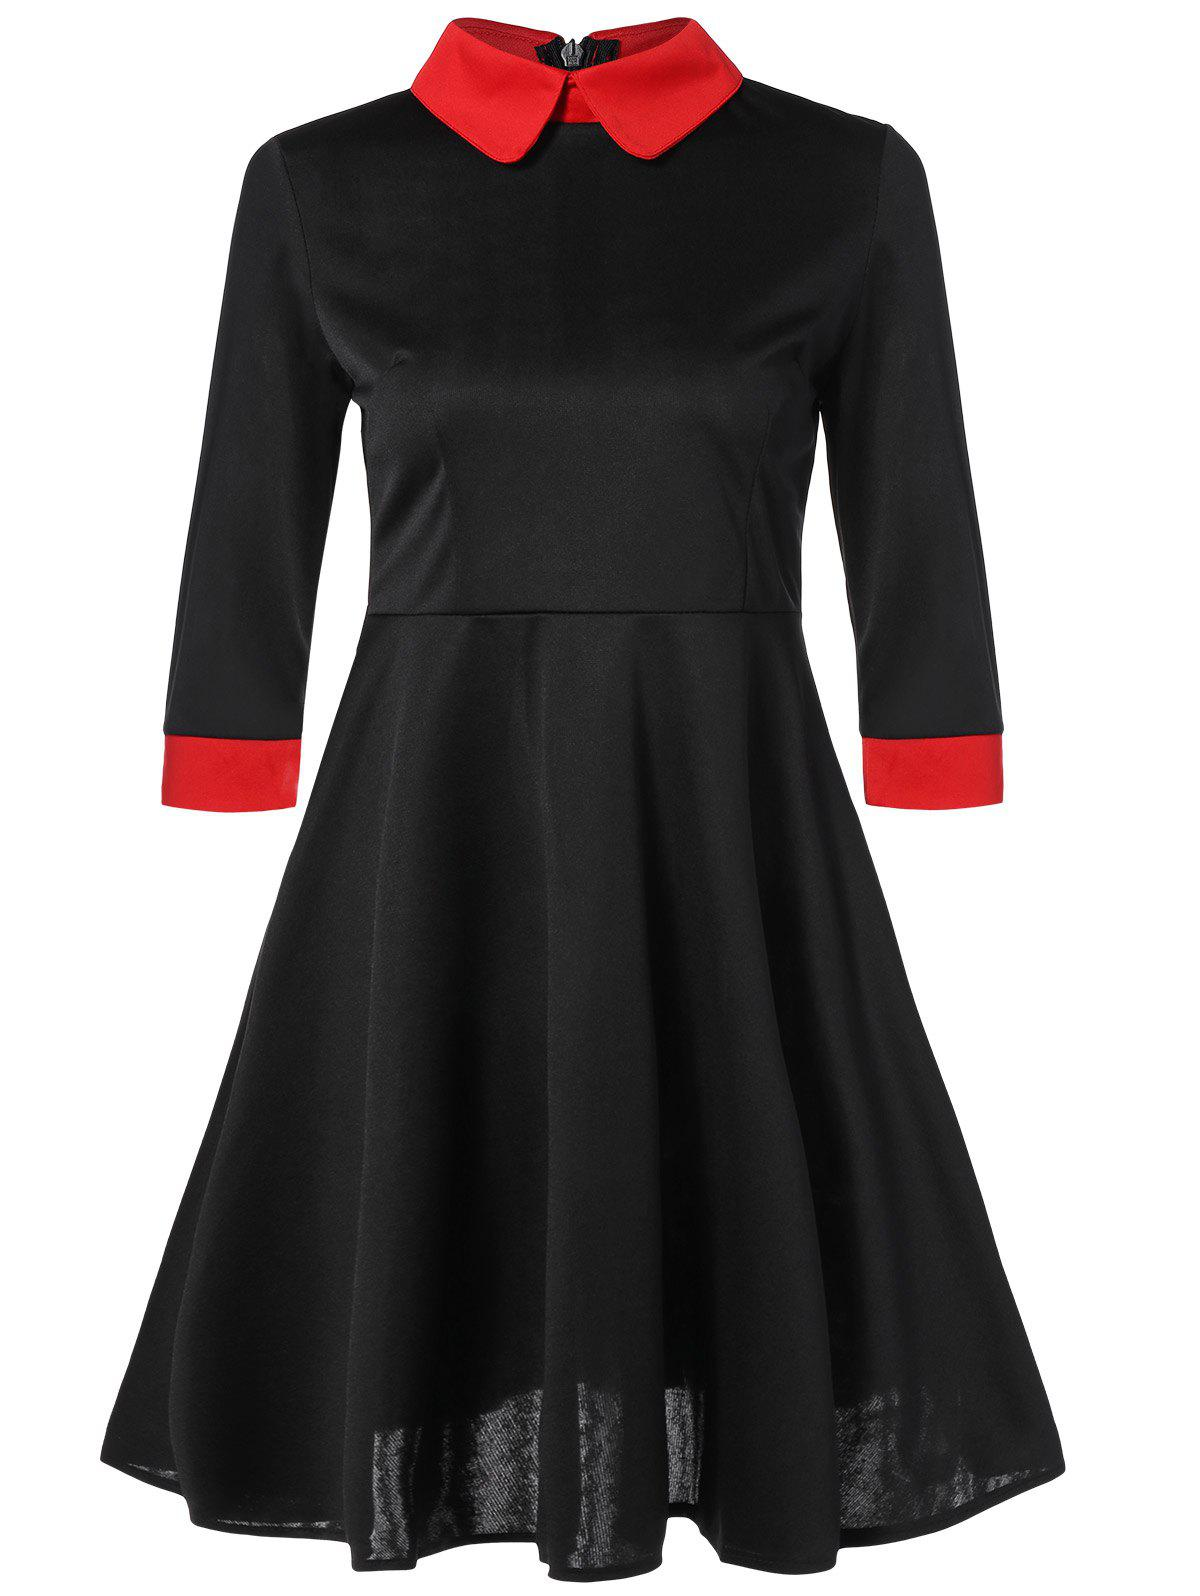 Contrast Trim Fit and Flare Dress - BLACK XL